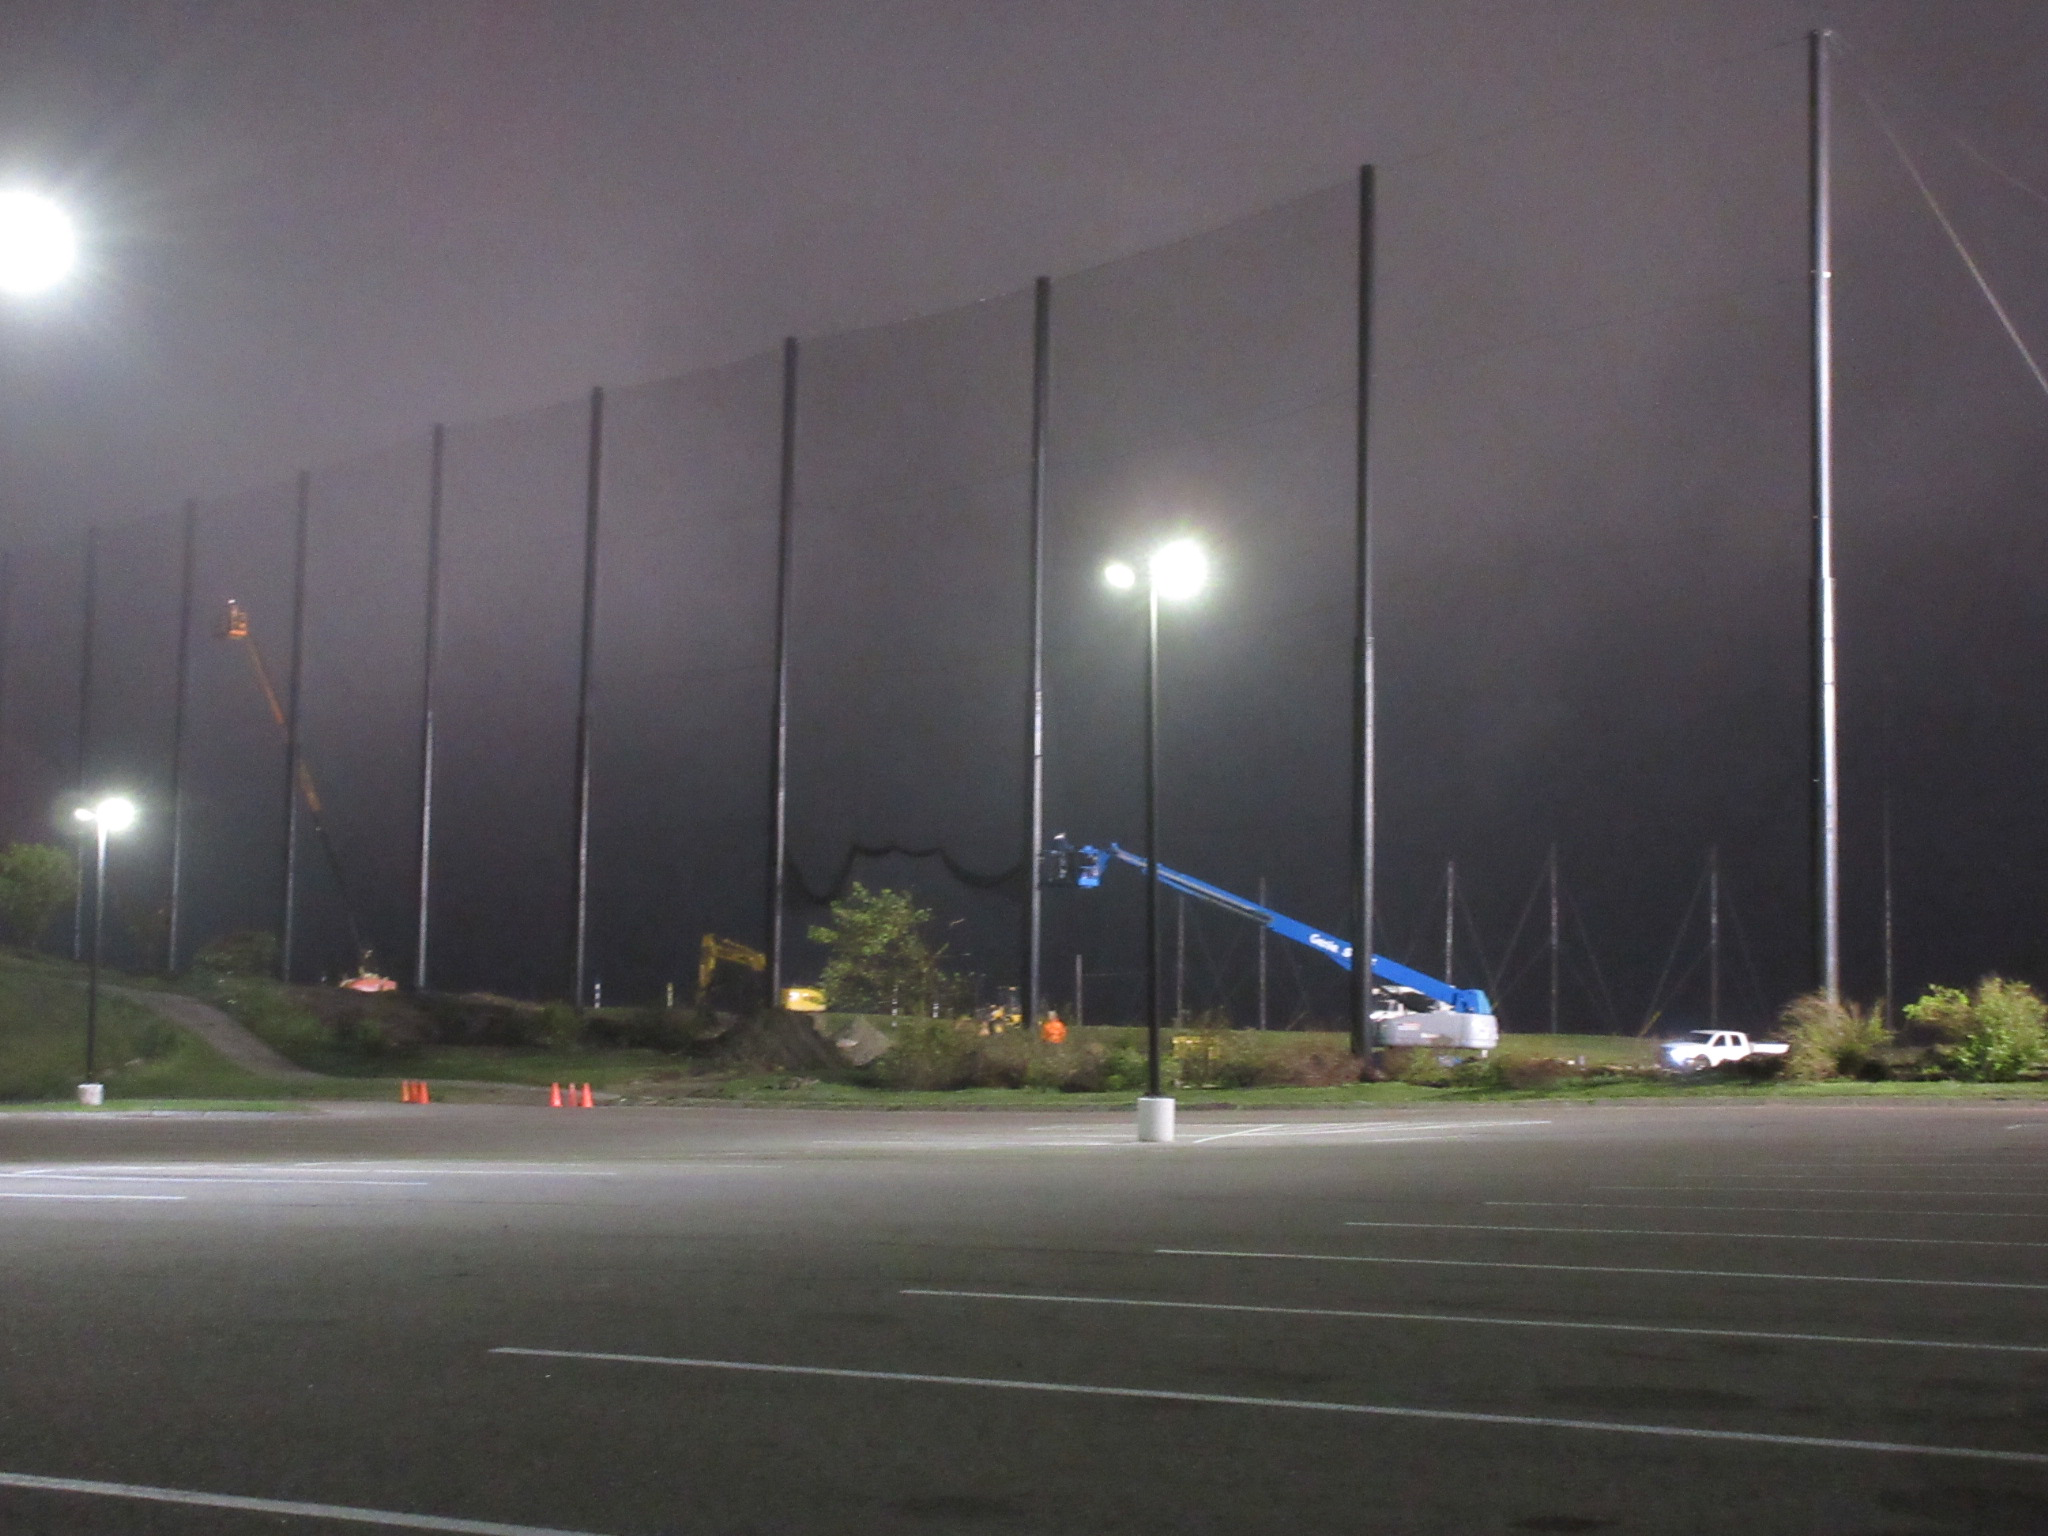 Fog rolled in at the end of the day installing golf netting panels